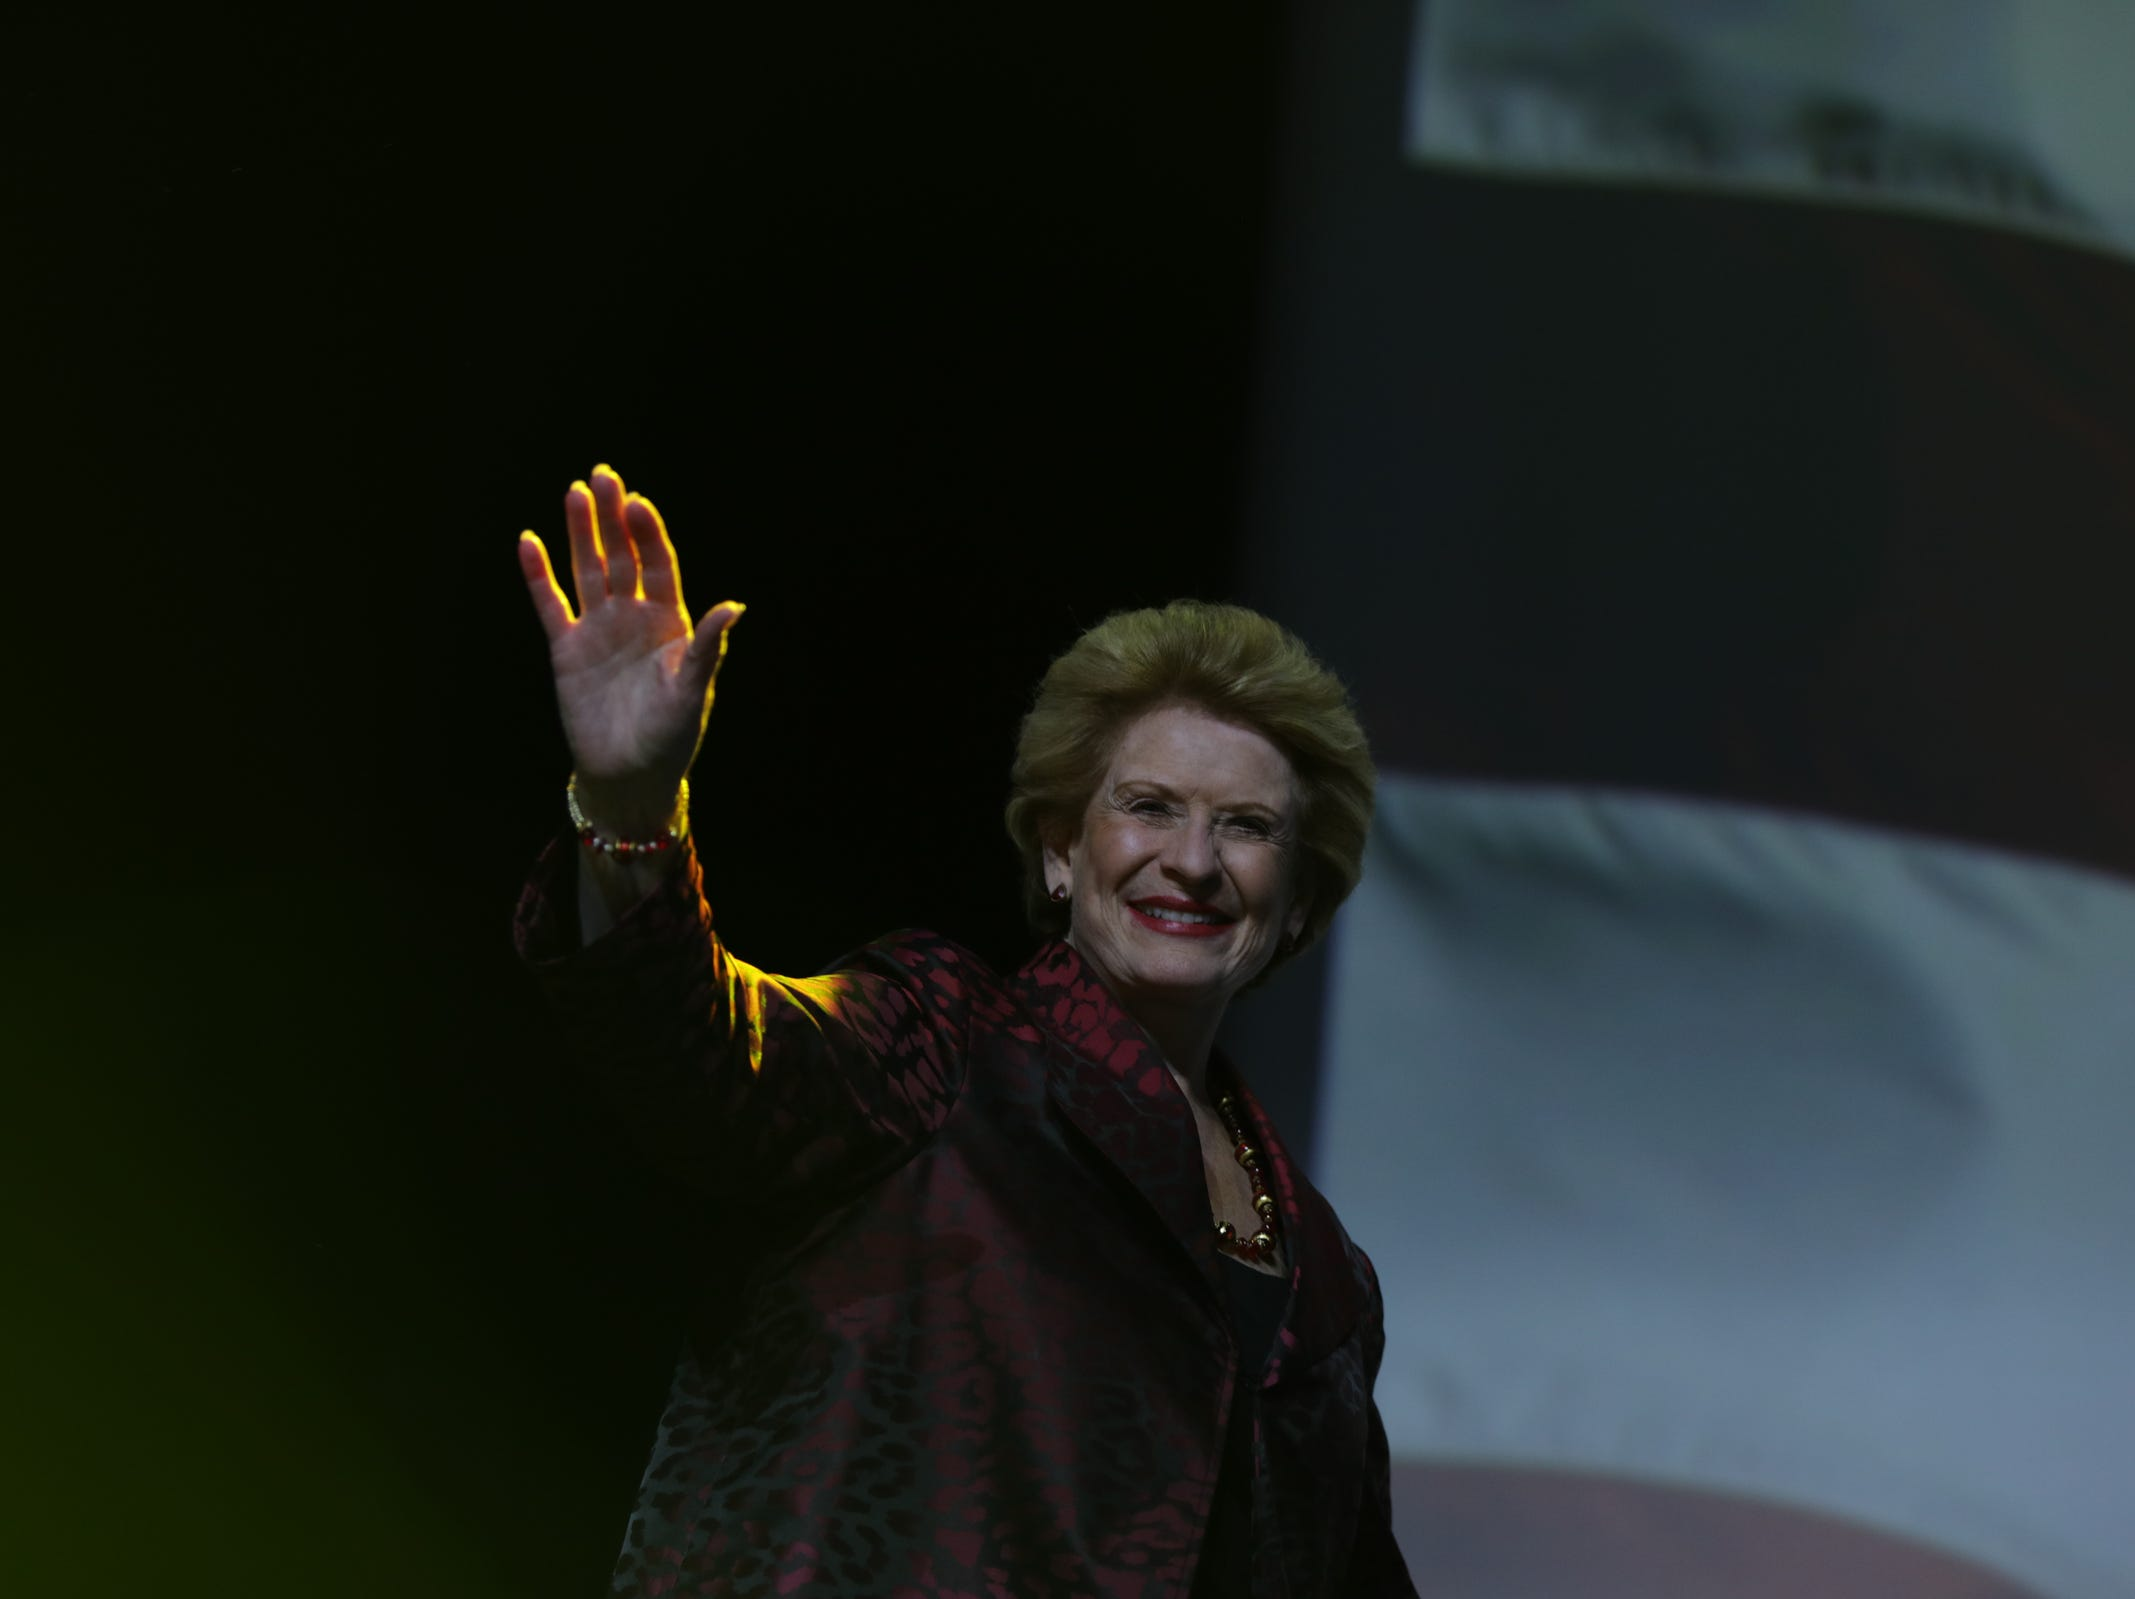 U.S. Senator Debbie Stabenow greets her supporters during the Democratic watch party celebration at MotorCity Casino's Sound Board in Detroit on Tuesday, Nov. 6, 2018.